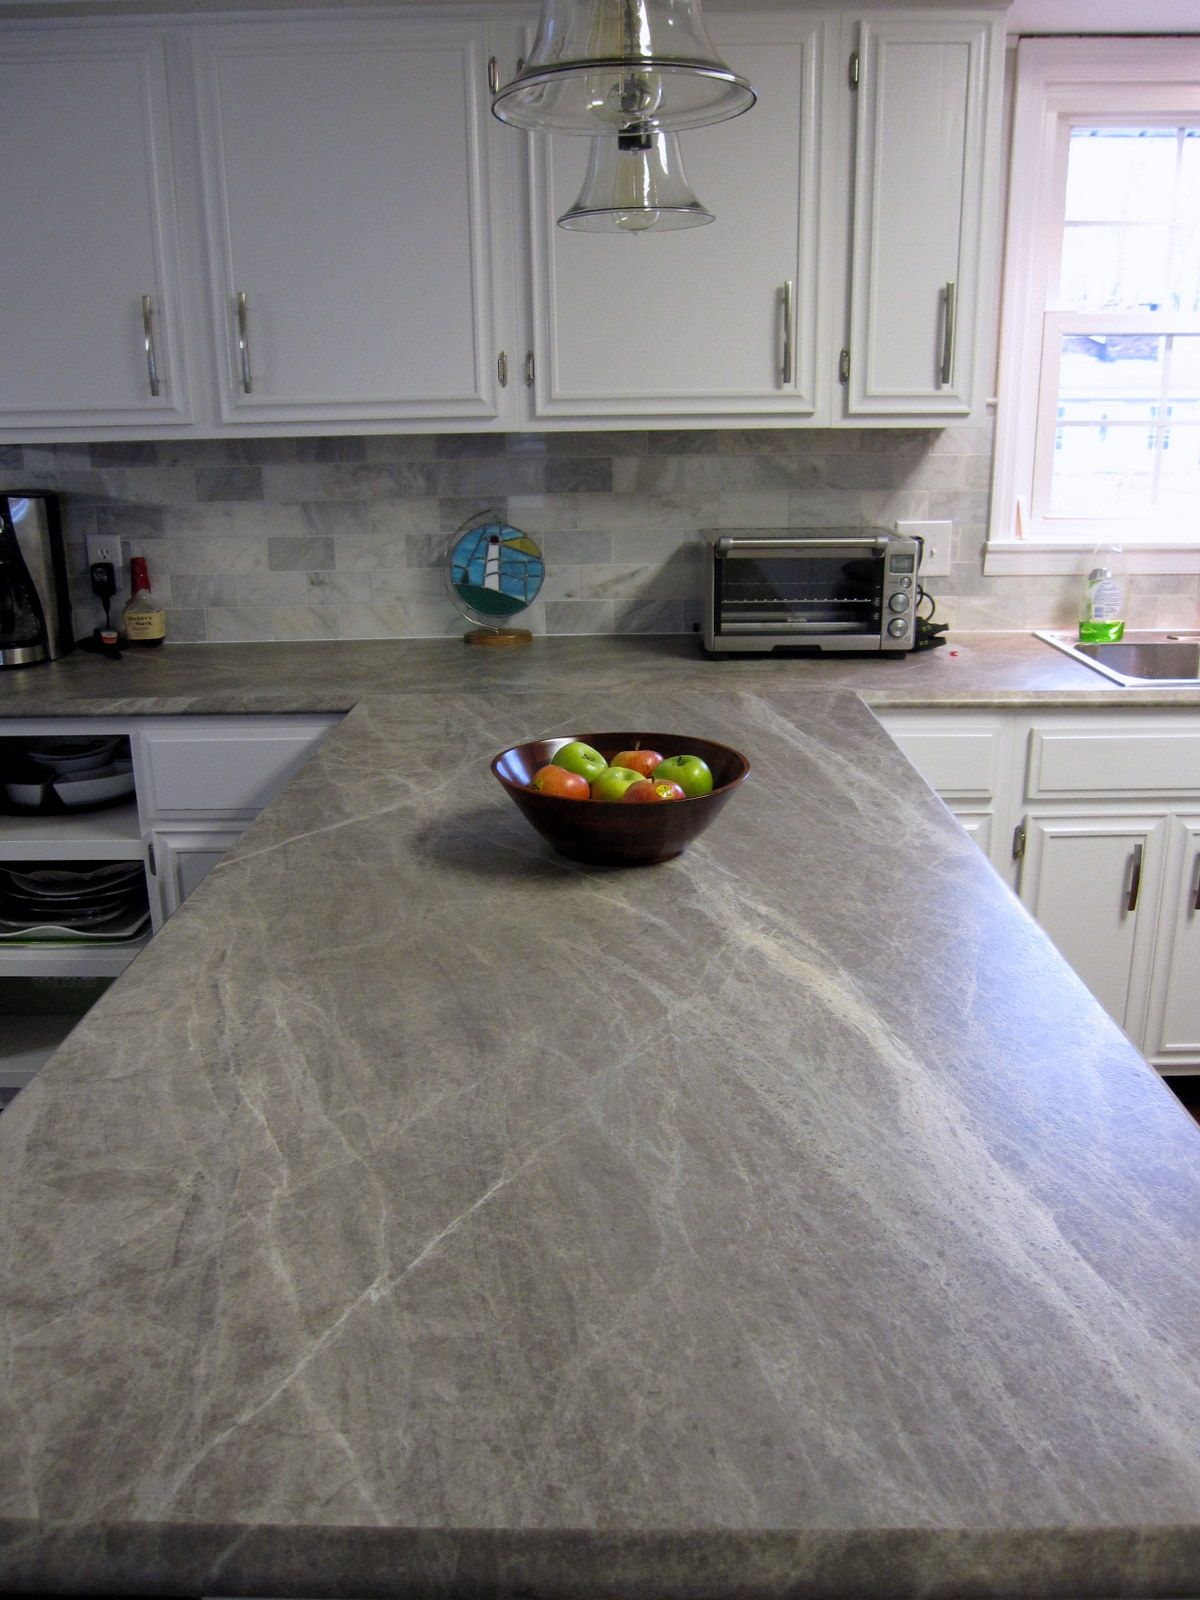 Remodelaholic More Diy Countertop Reviews Kitchen Remodel Countertops Kitchen Remodel Cost Kitchen Remodeling Projects